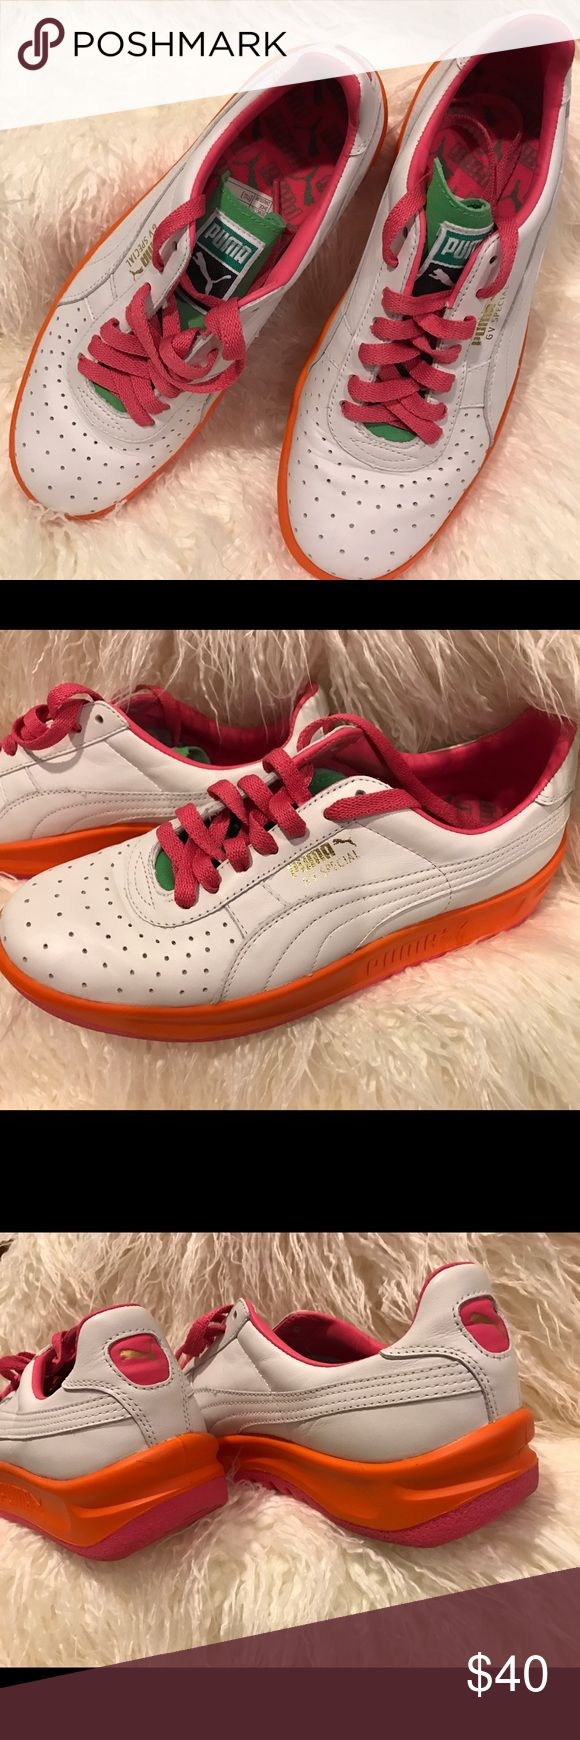 Puma Original: GV Special Hot Pack Women's Gently used Women's Puma Sneaker US 7.5         White/Pink/Orange                                                    Make me an offer I cannot resist!😉 Puma Shoes Sneakers